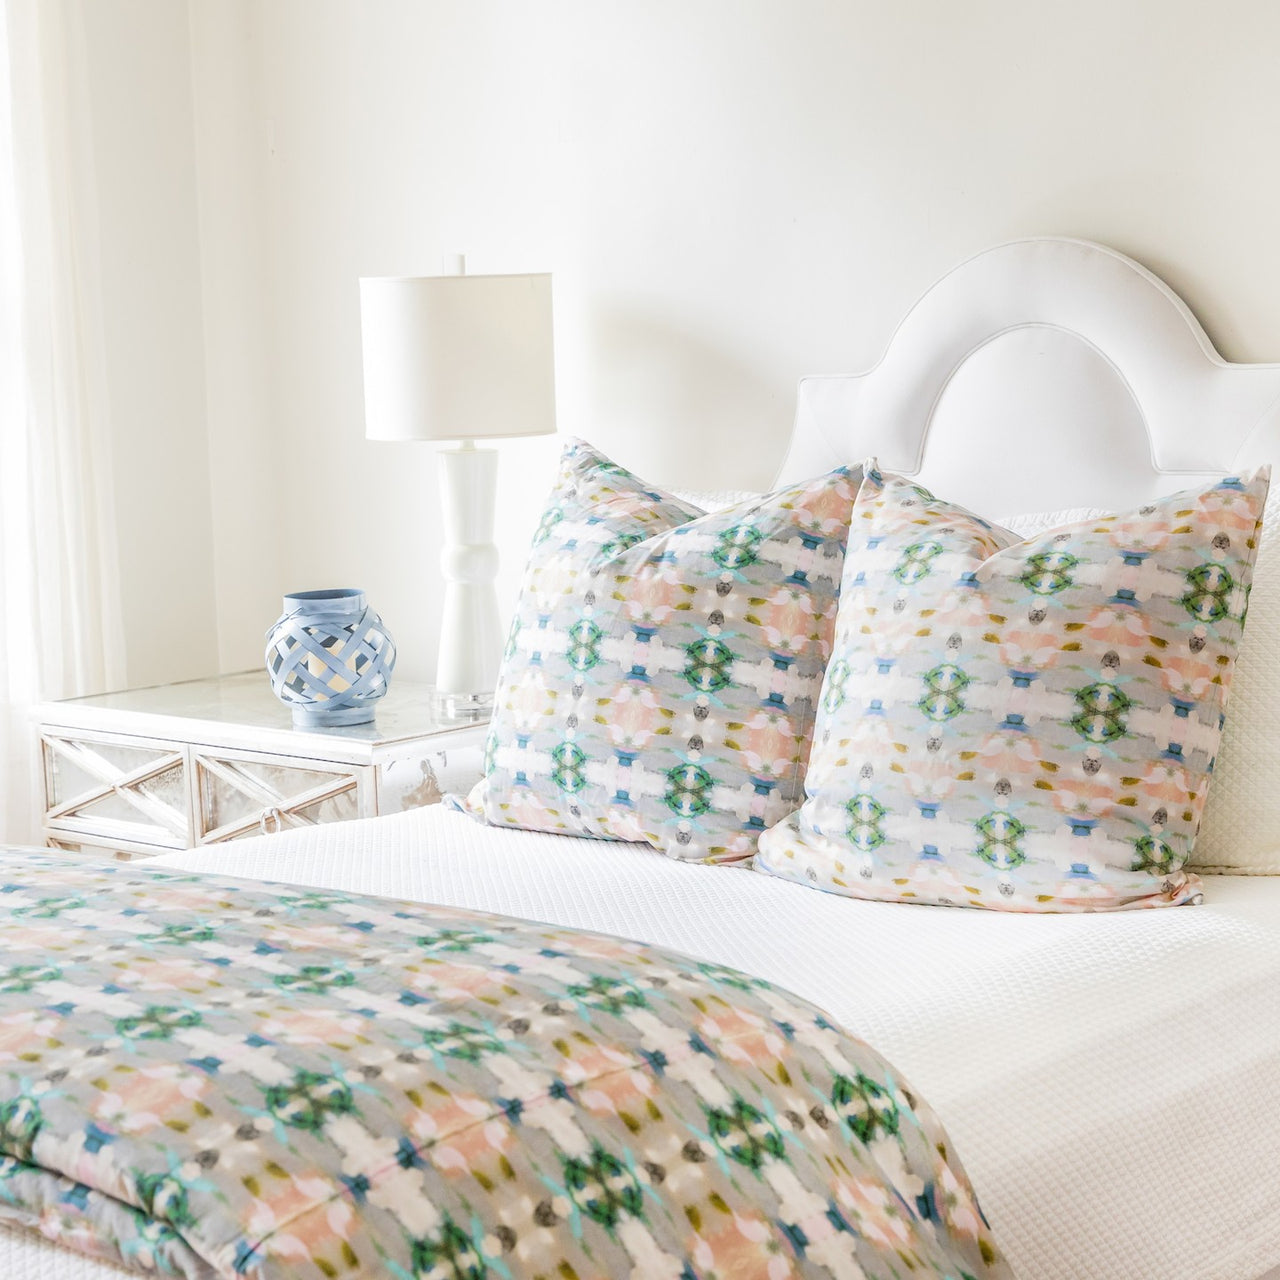 "Indigo Girl Green Duvet Cover <span style=""color:#00ADB3;font-weight:600;"">NEW</span>"